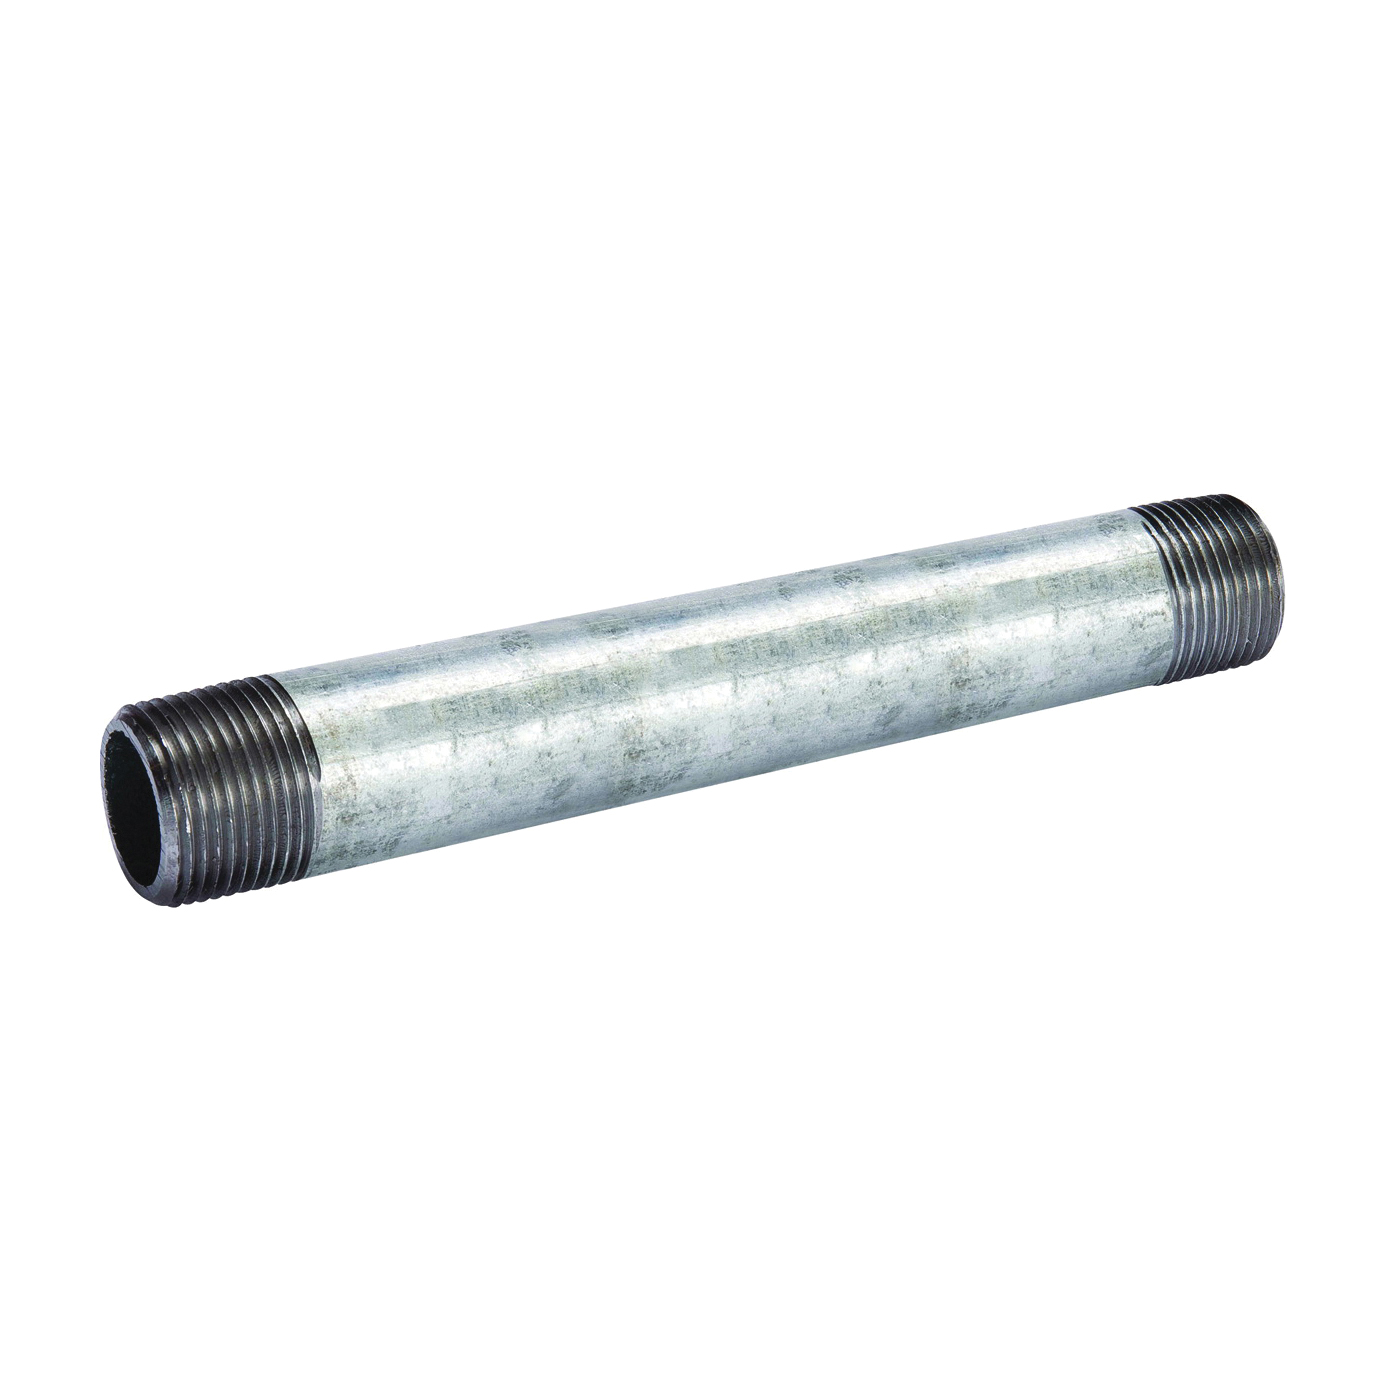 Picture of B & K 570-120BC Pipe Nipple, 3 in, Threaded, Galvanized Steel, SCH 40 Schedule, 12 in L